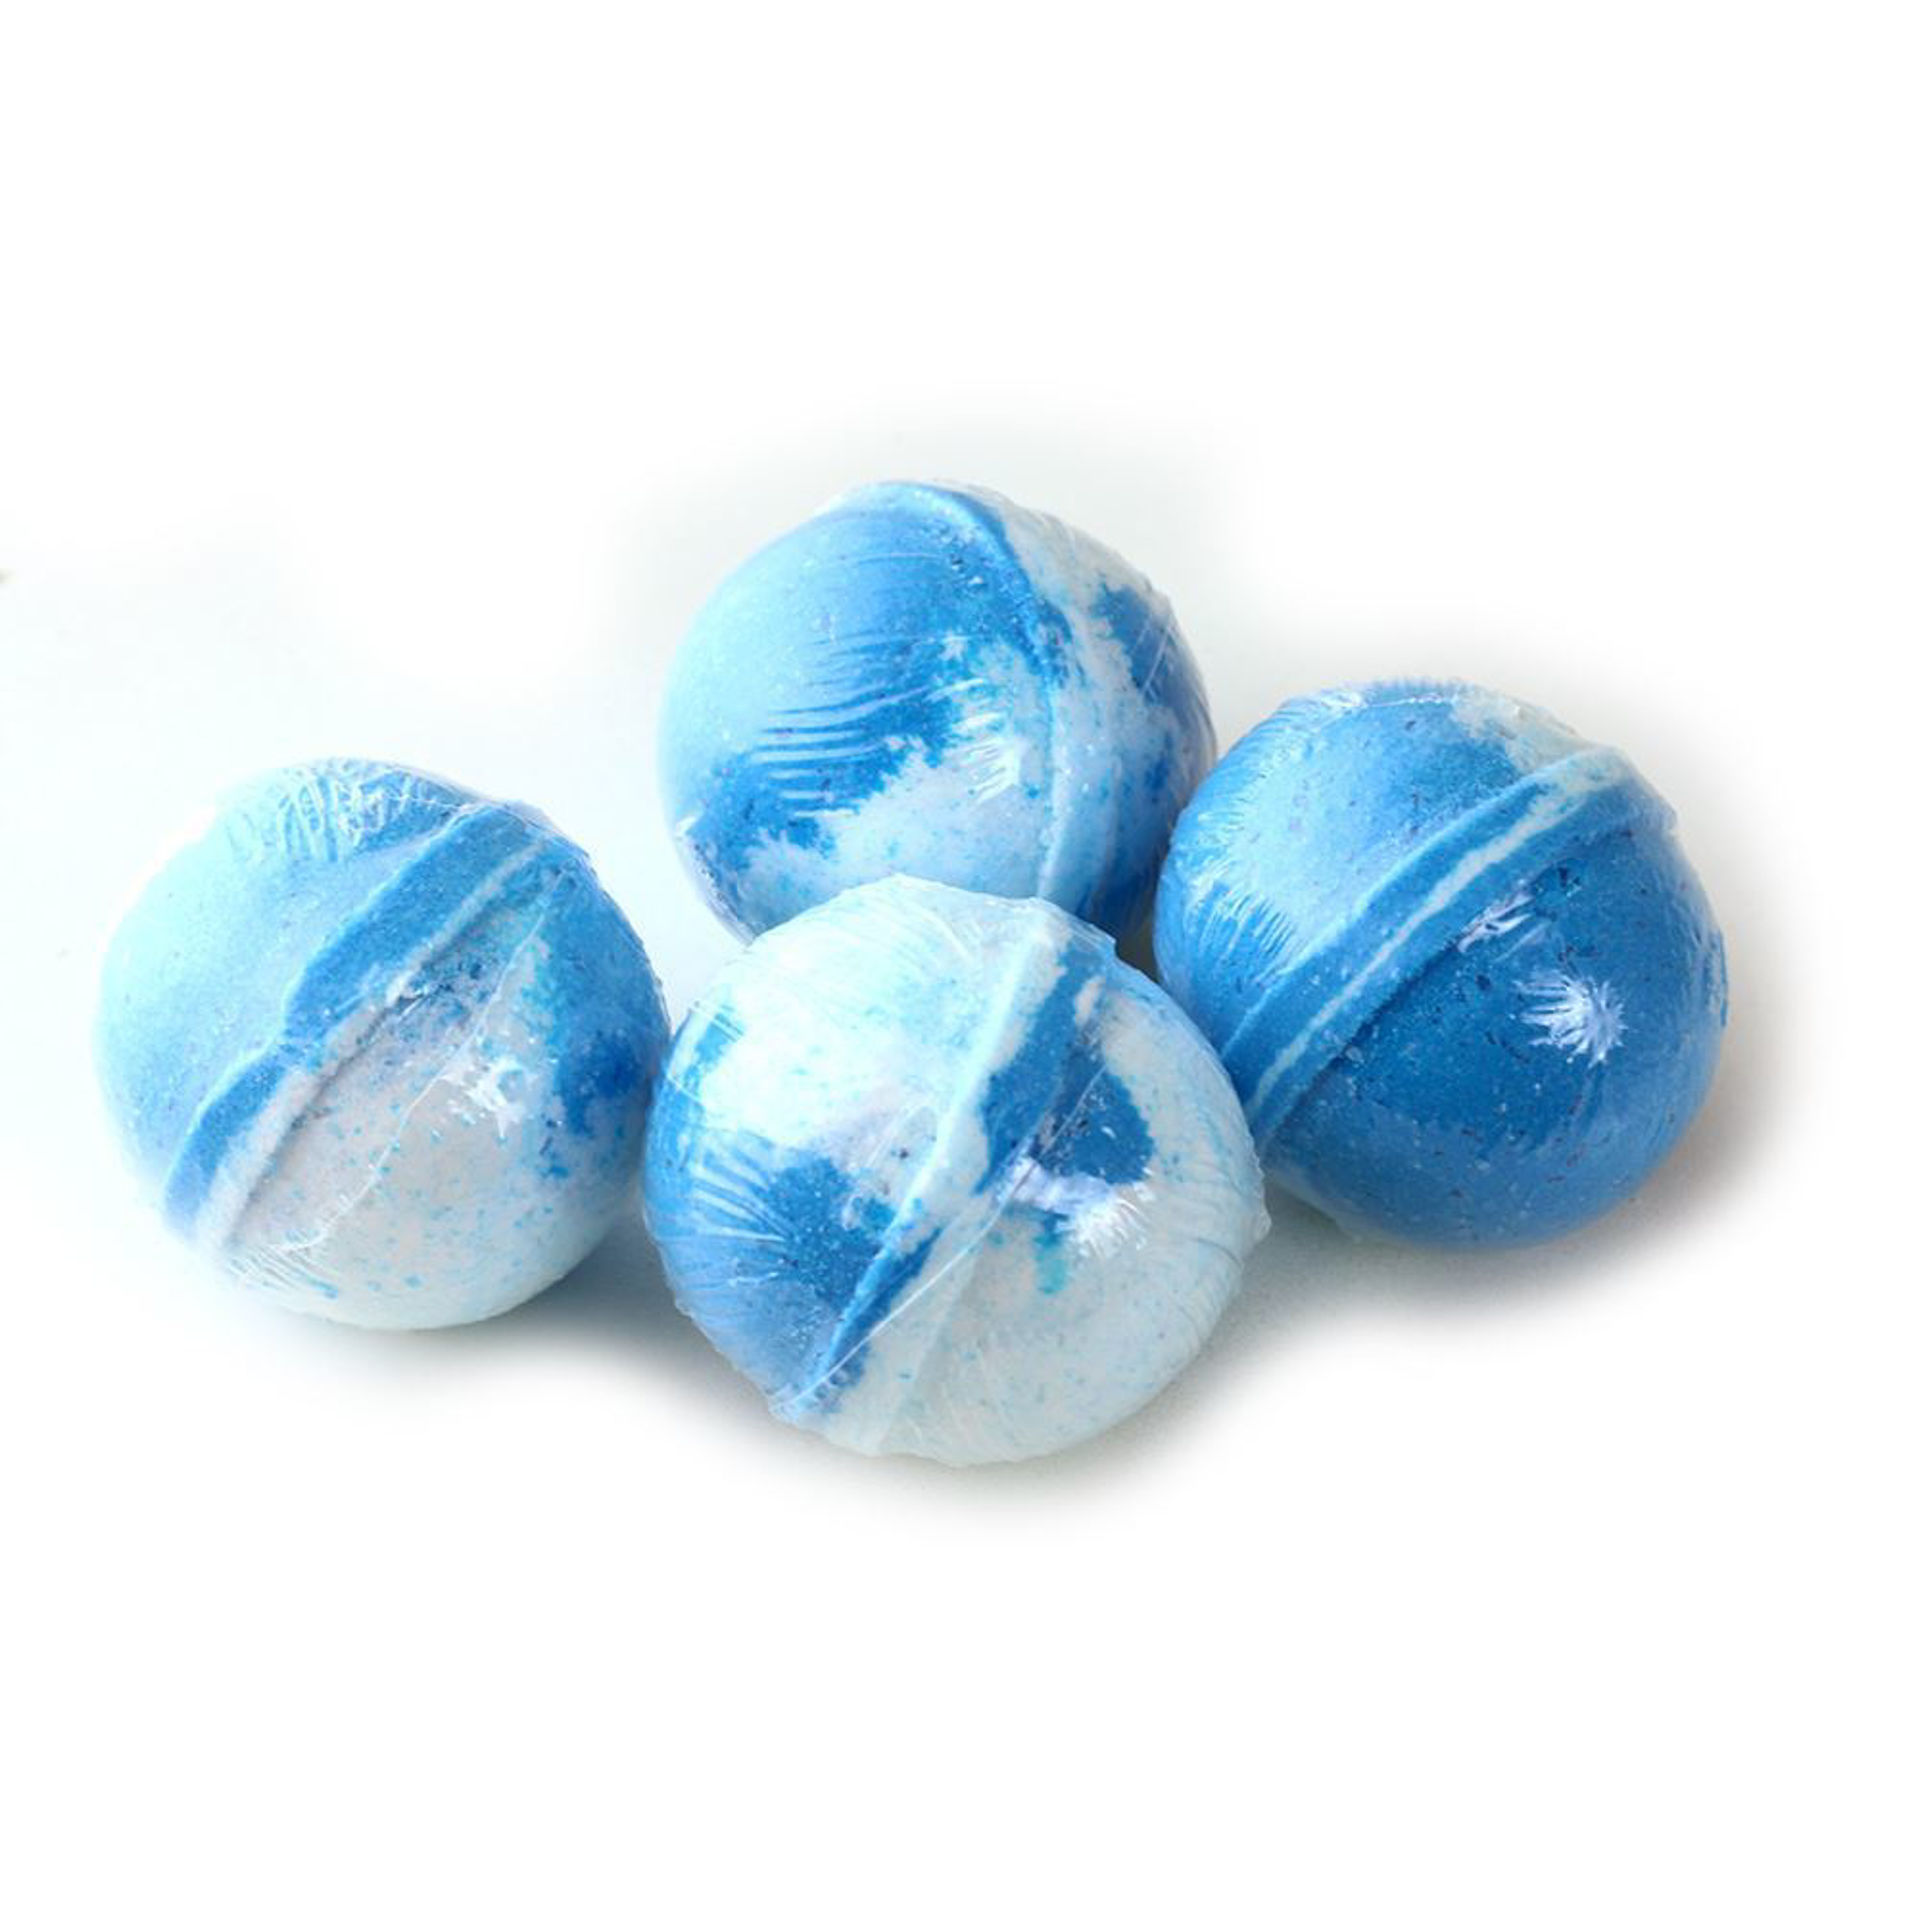 Picture of Cooling Waters Bath Bombs: 4 Pack